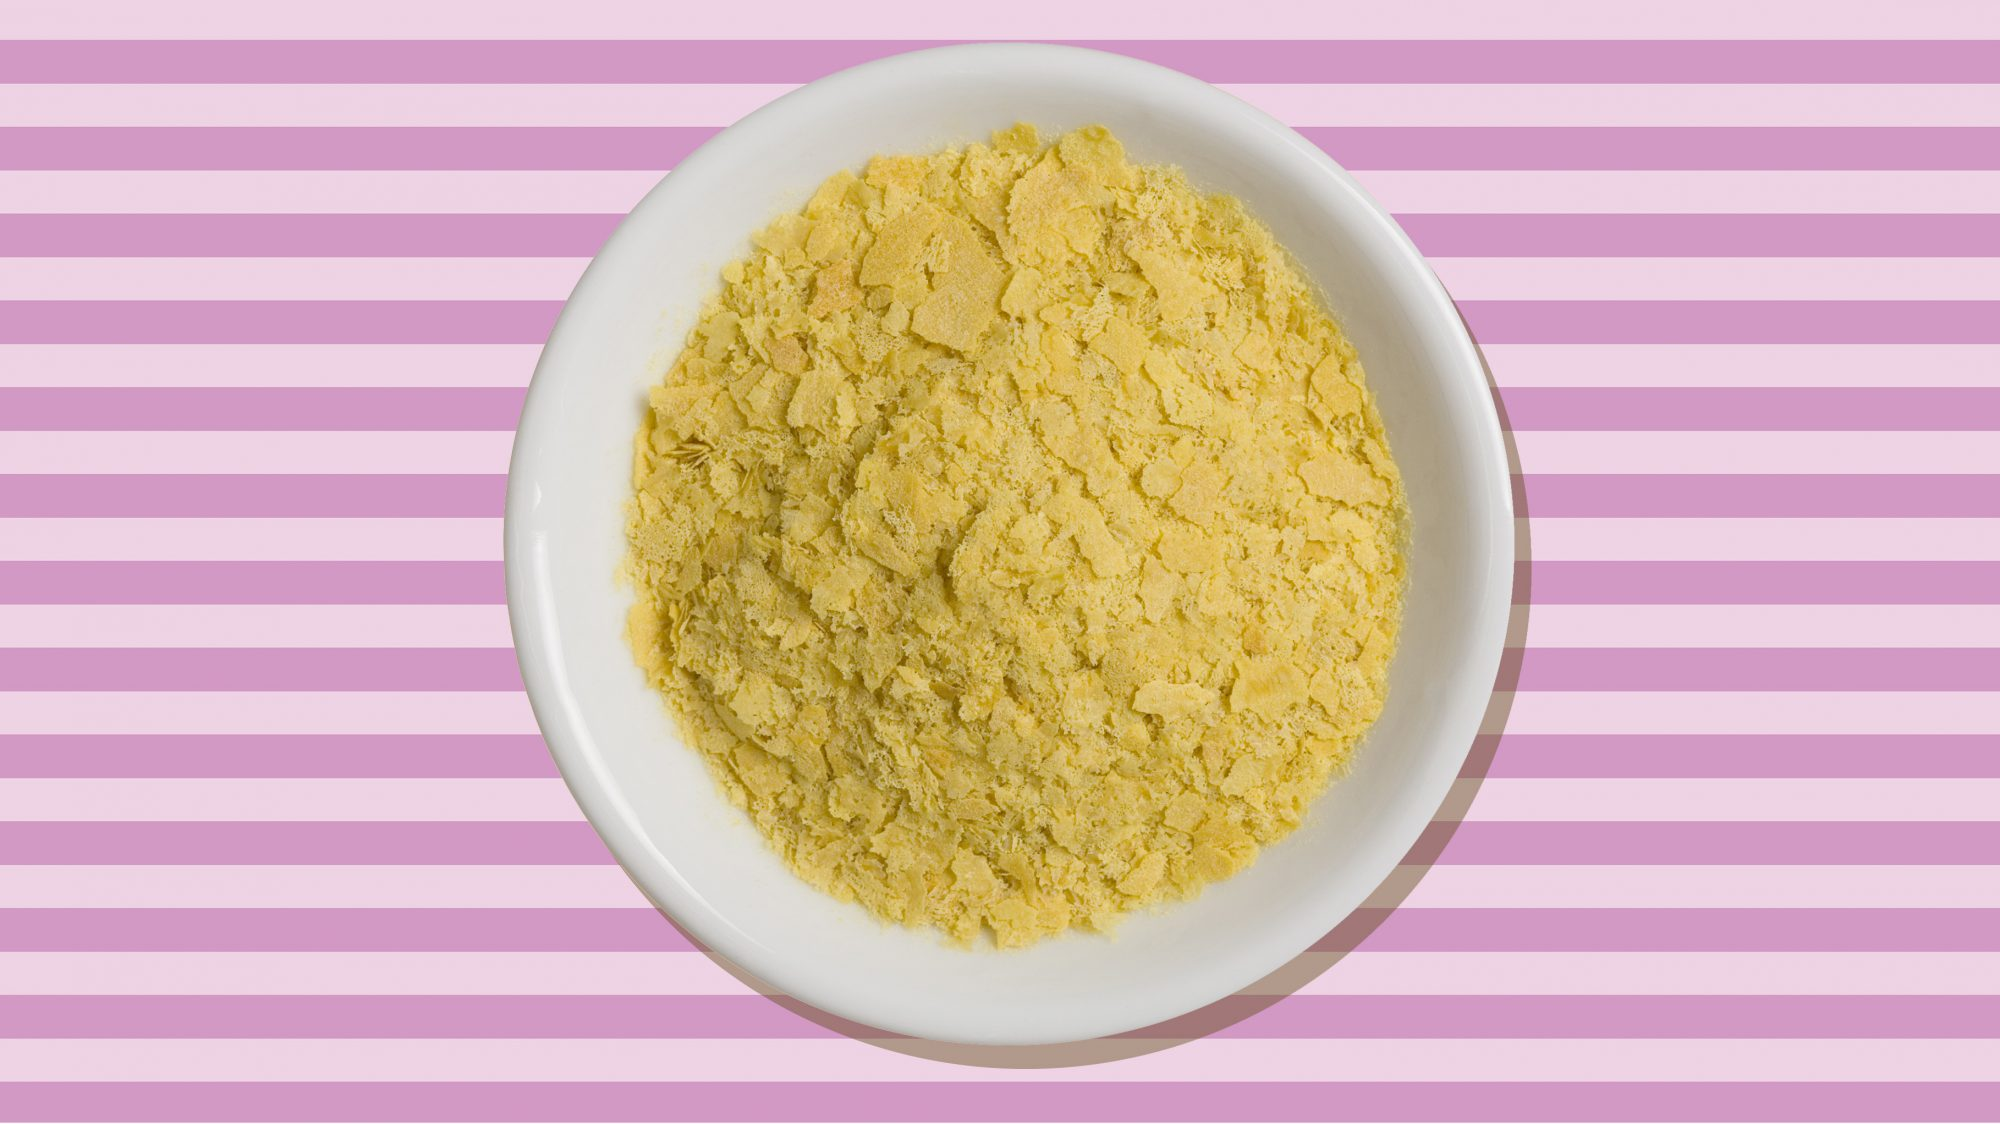 nutritional-yeast-bowl